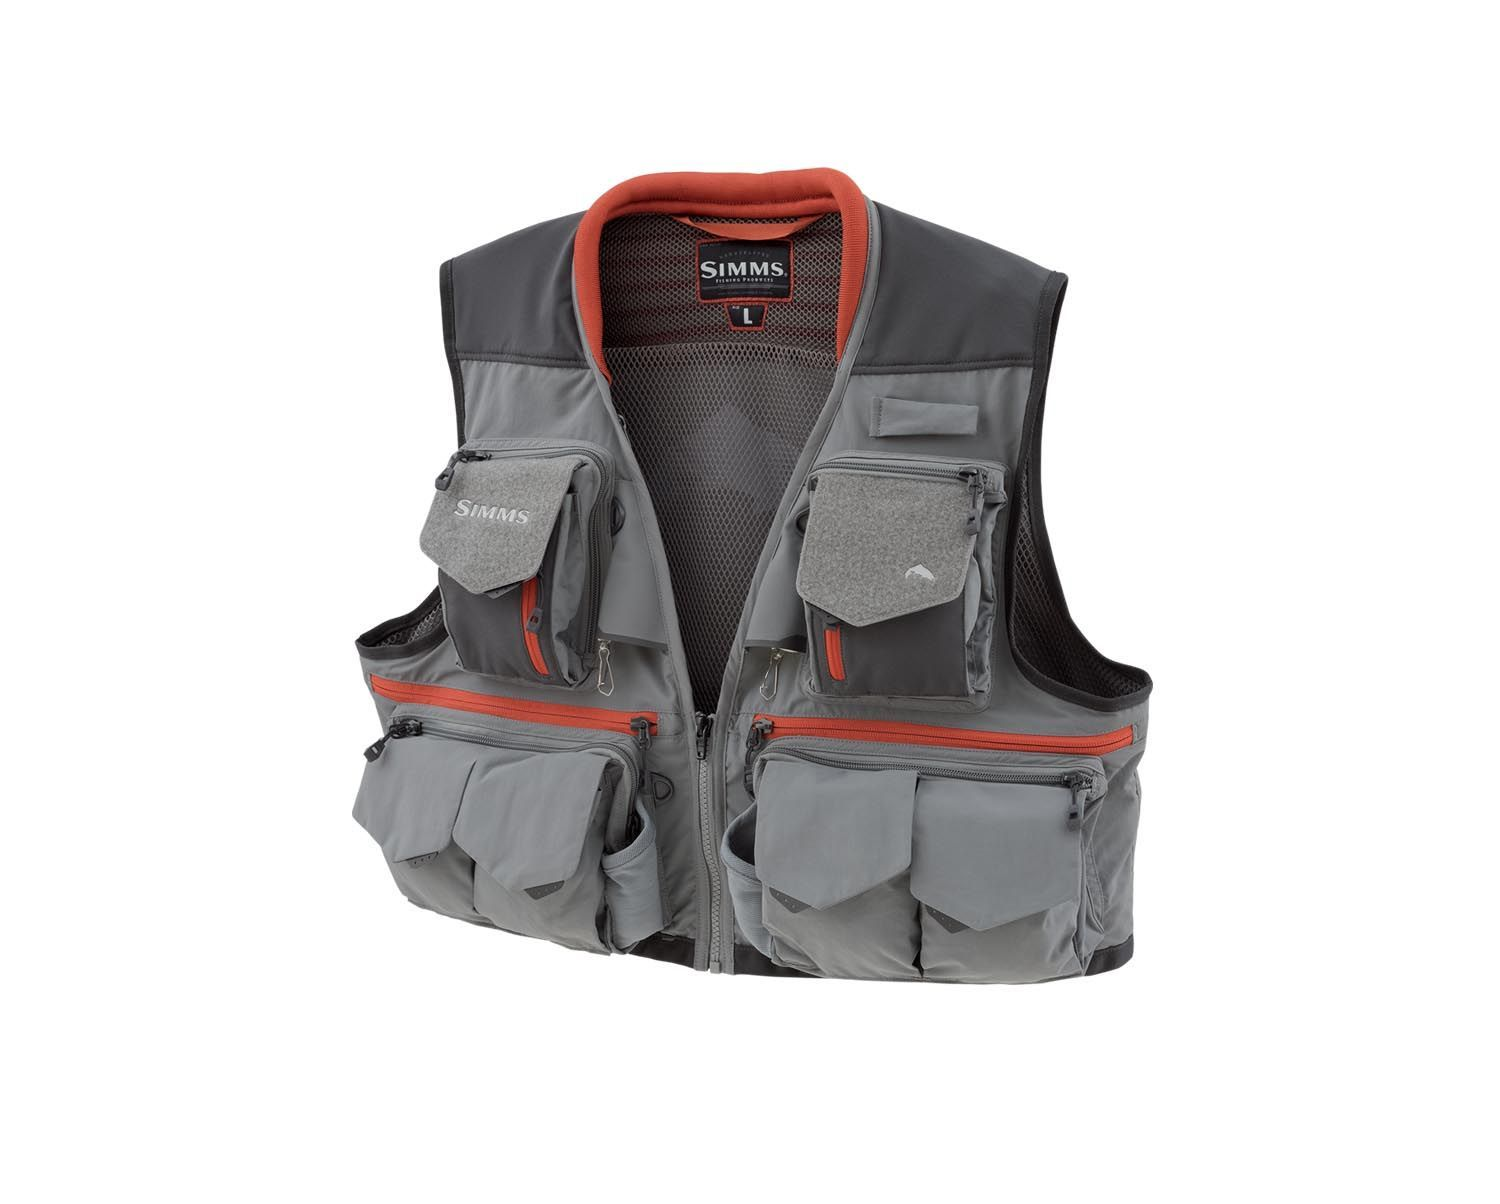 GUIDE FISHING VEST - The TroutFitter Fly Shop